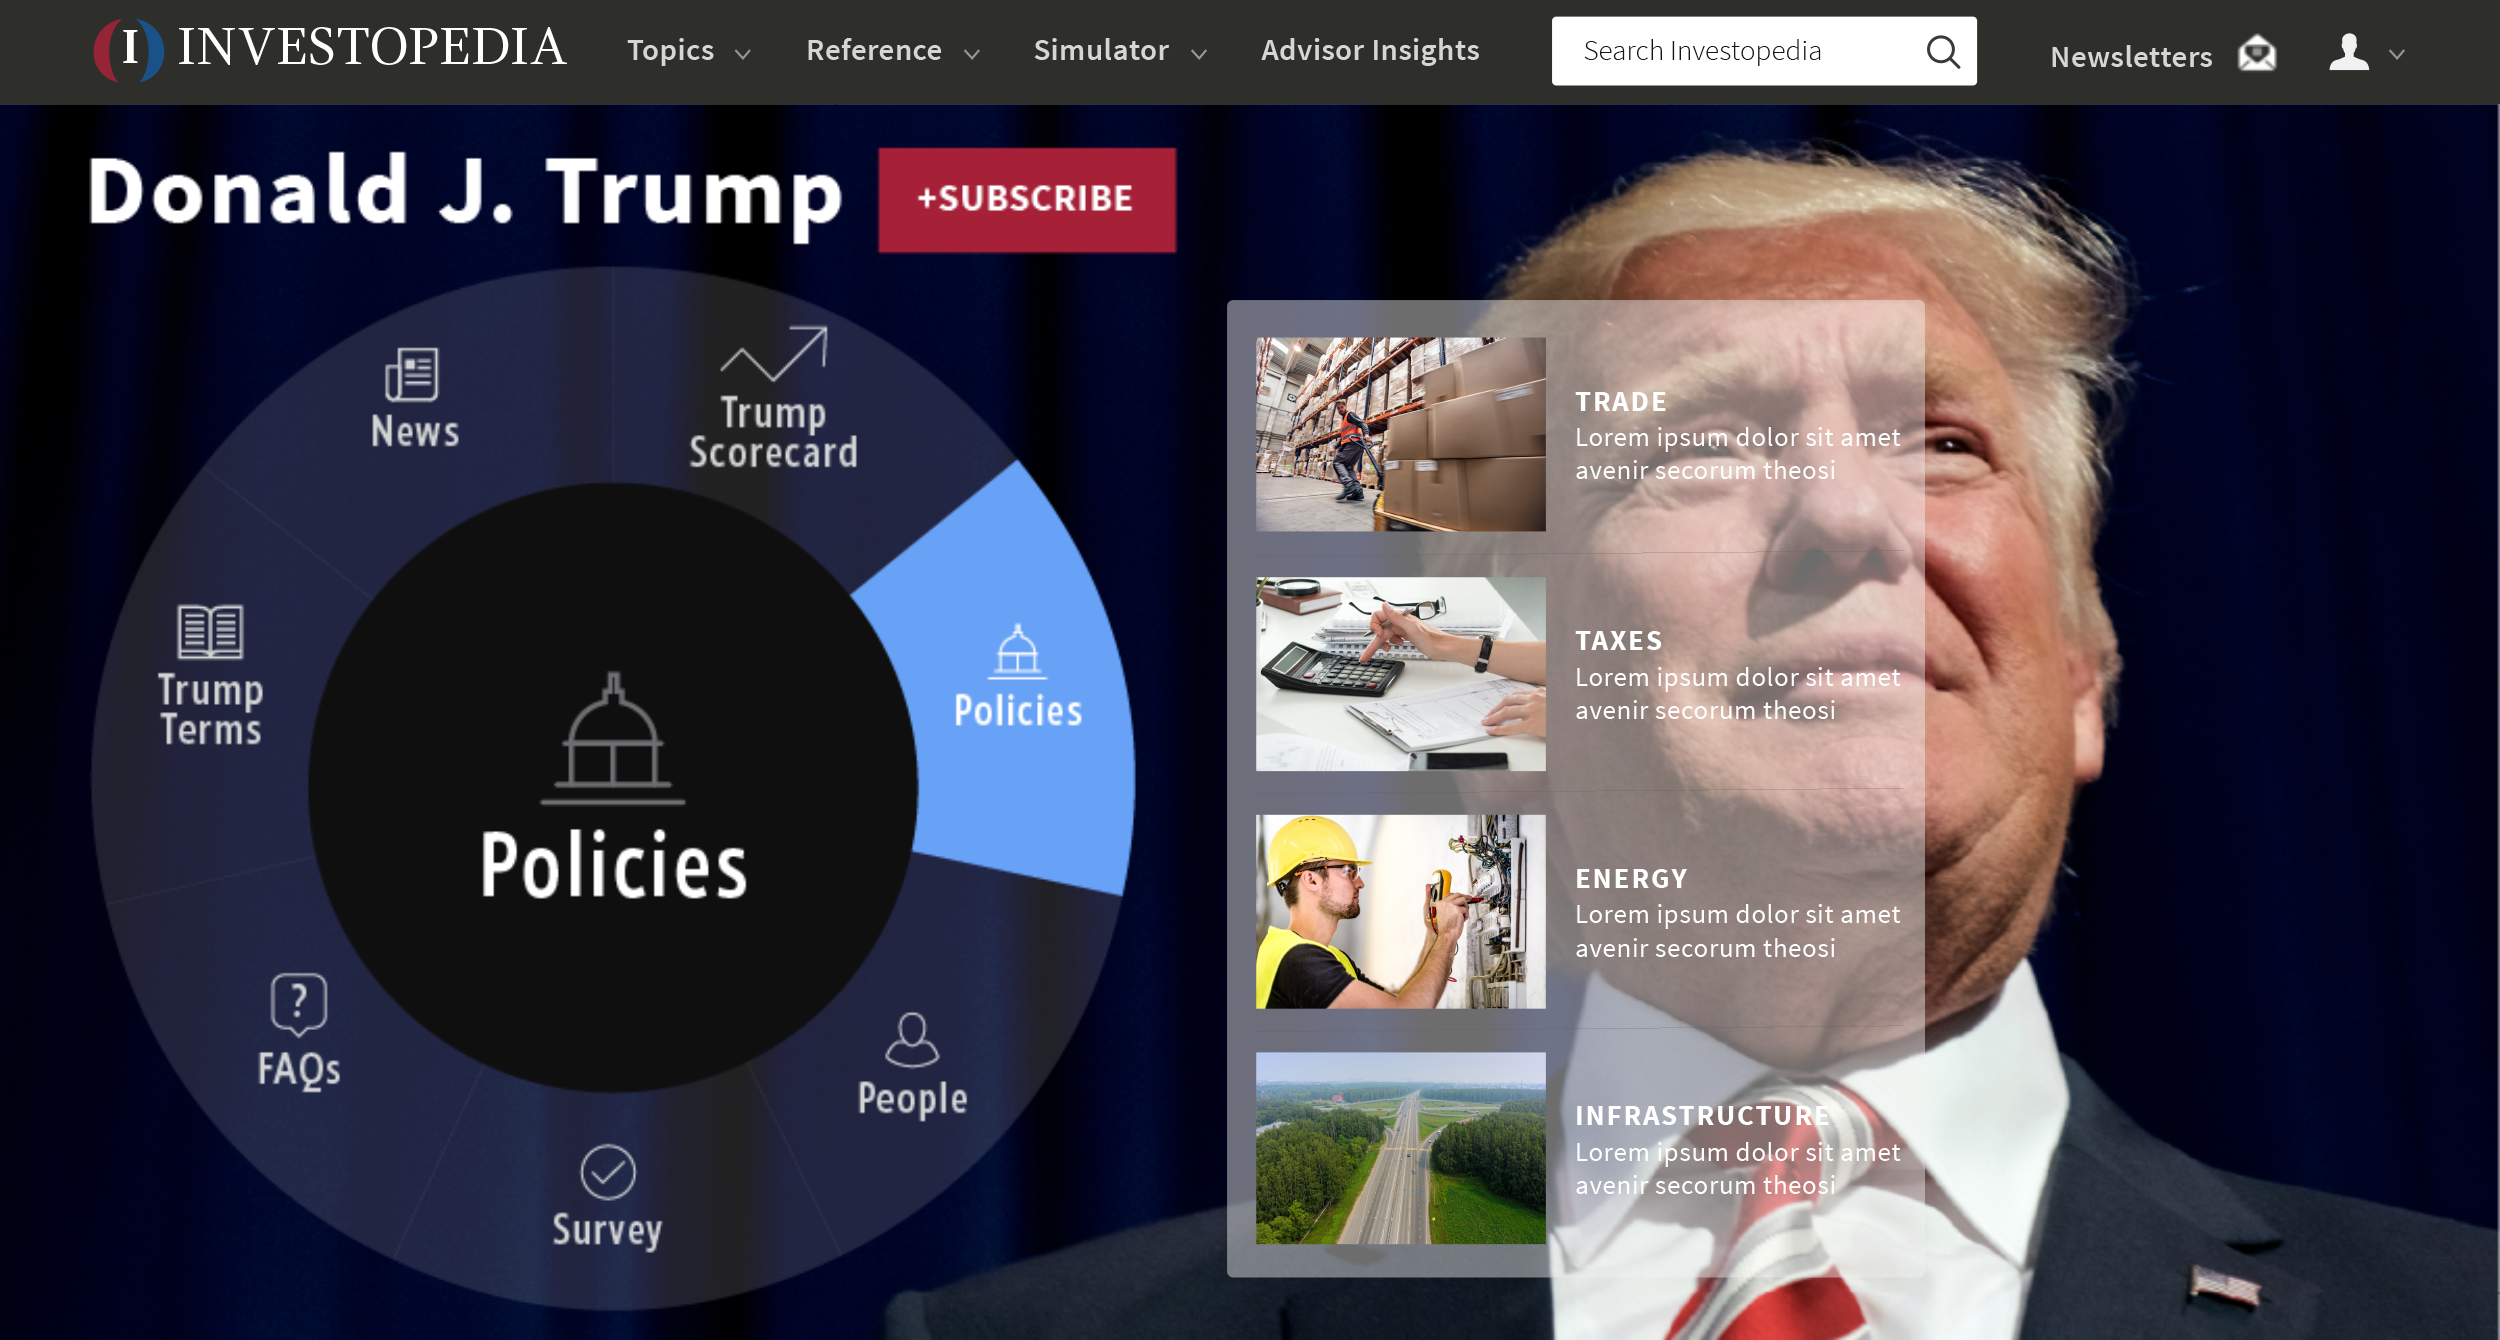 _TrumpSuperPage Visual Design 120516 Policies Overlay